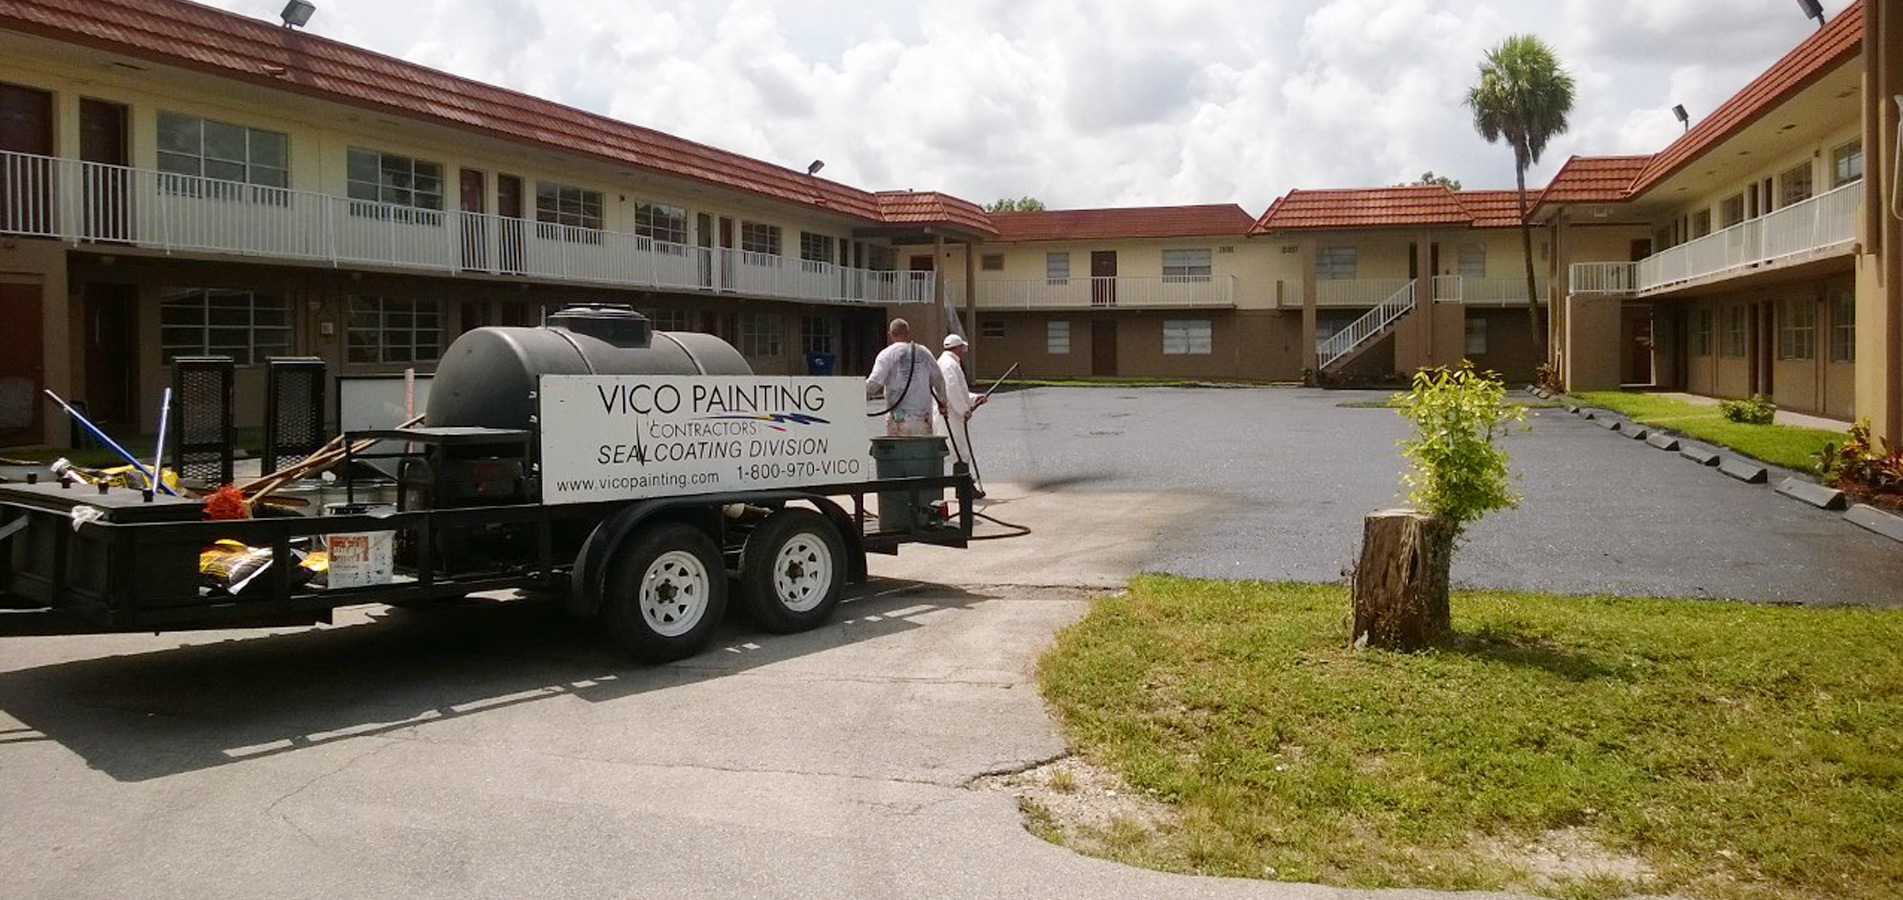 Vico Painting Sealcoating Contractors Miami, FL